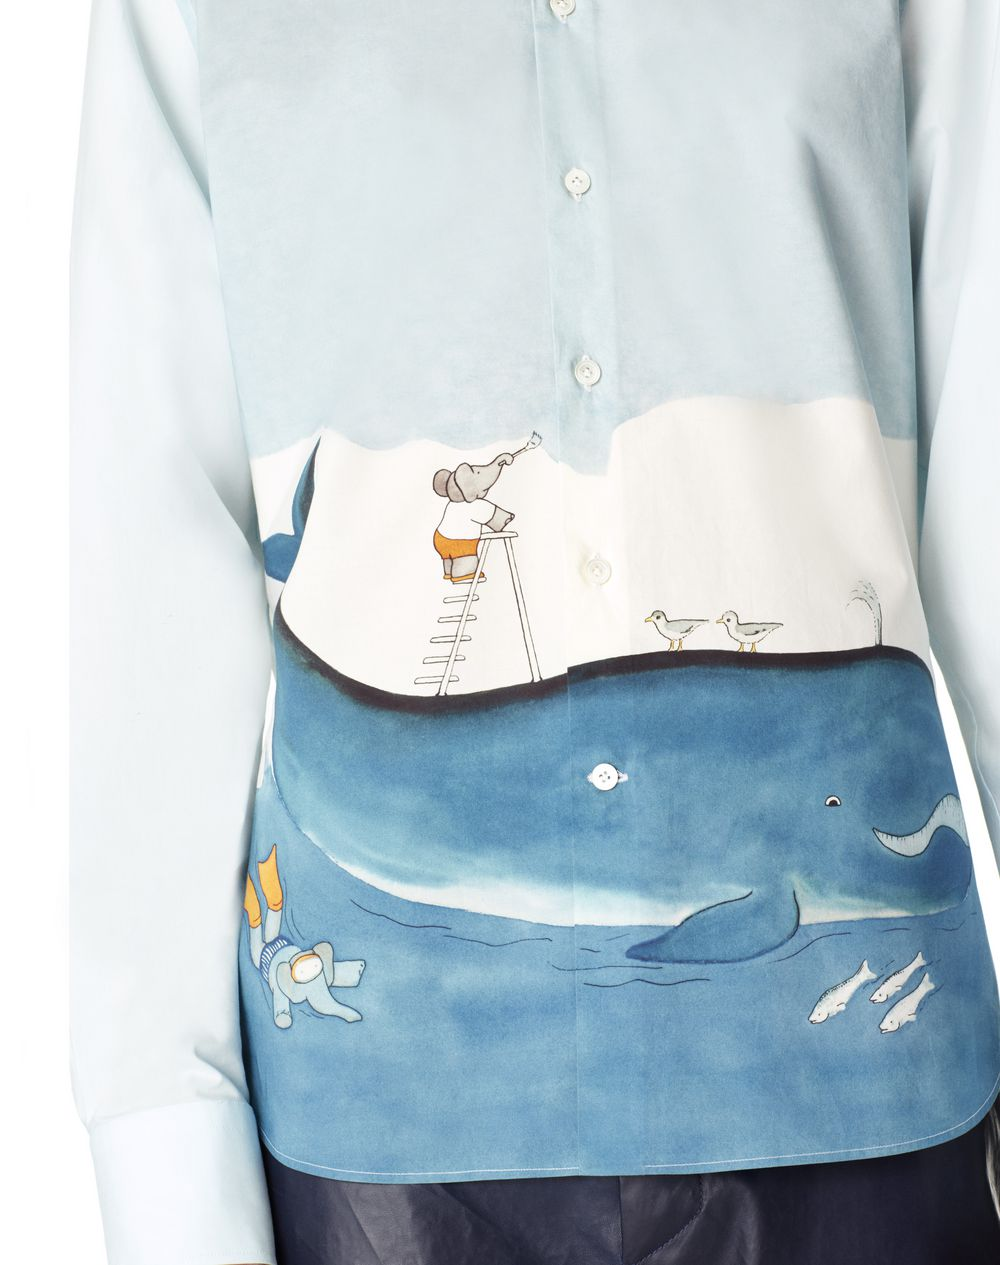 STRAIGHT-FIT SHIRT WITH BABAR PRINT - Lanvin